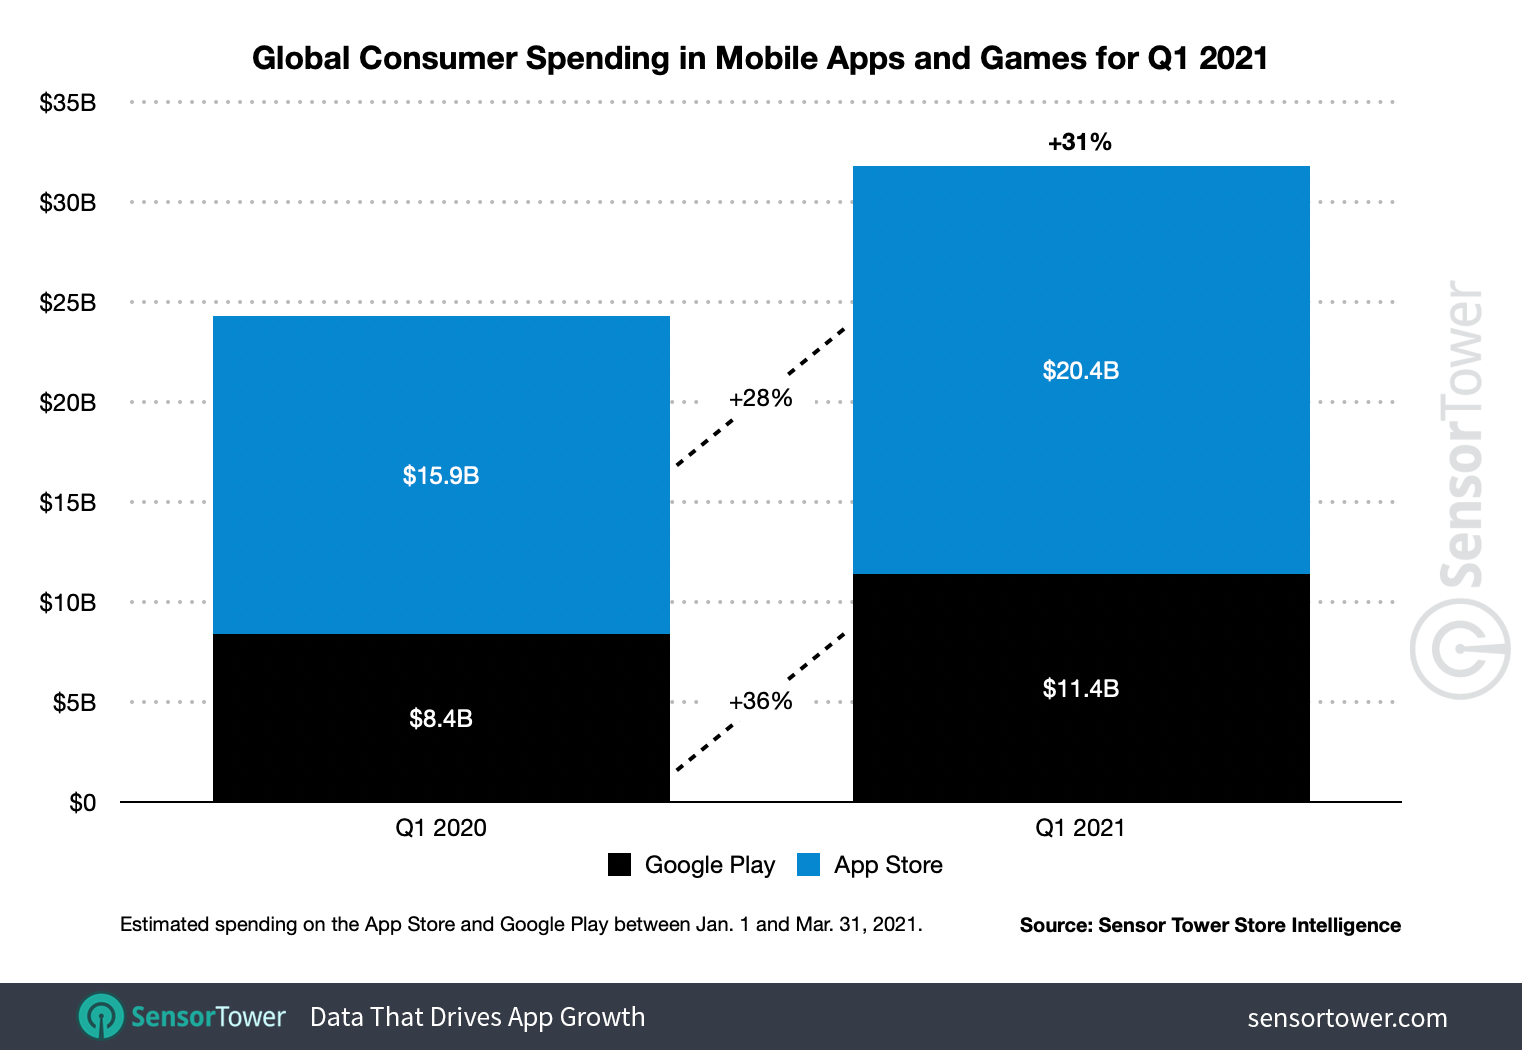 Global consumer spending on apps grew 31% year-on-year to $ 31.8 billion in 1Q21.